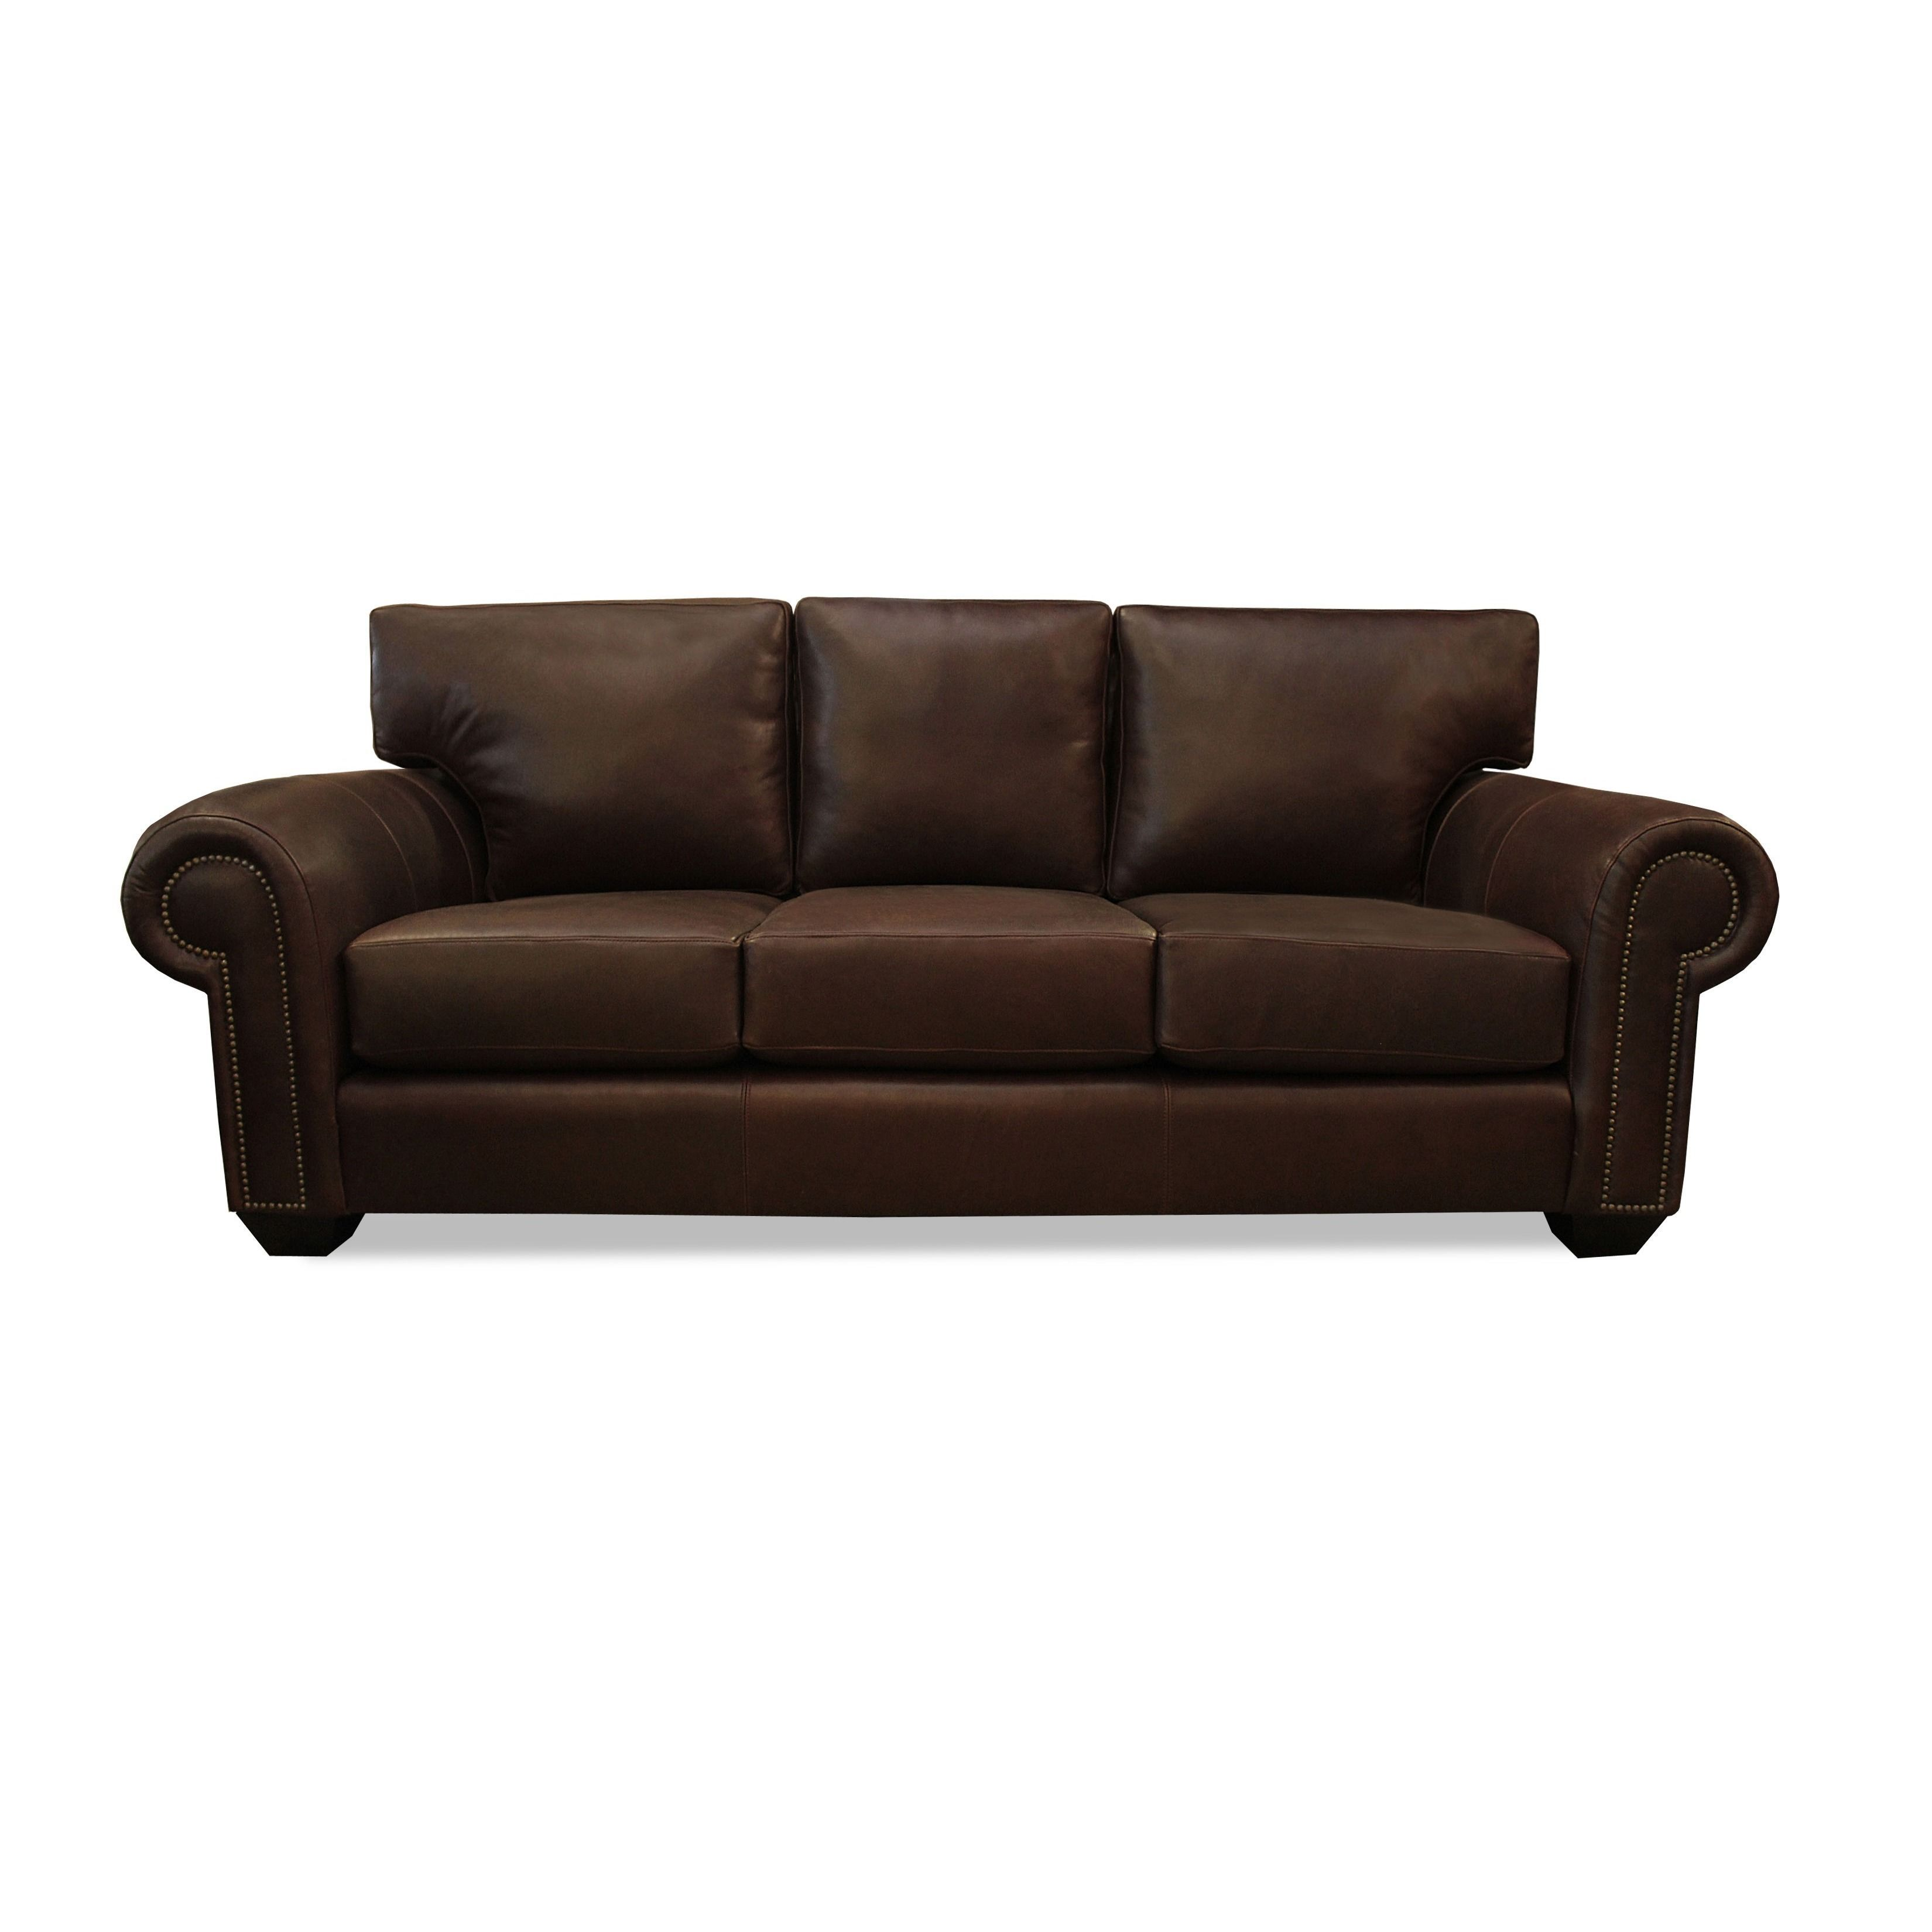 South Cone Home Made to Order Cambridge Italian Leather Sofa 90